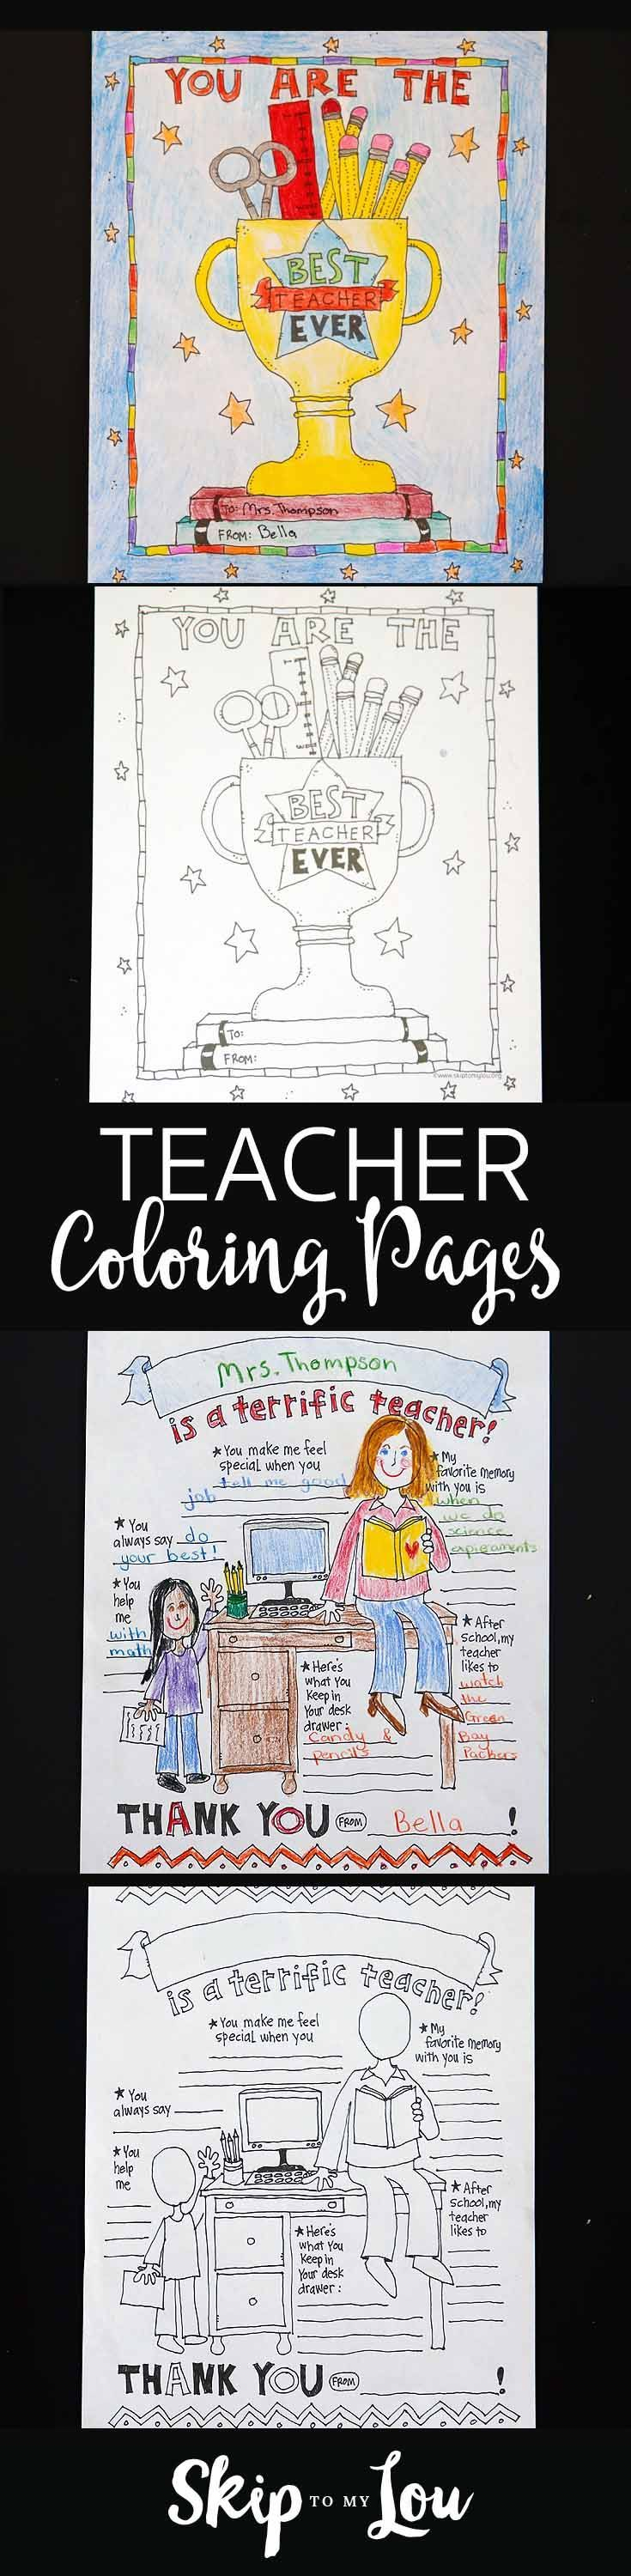 Print at home coloring pages for teacher a appreciation gift!